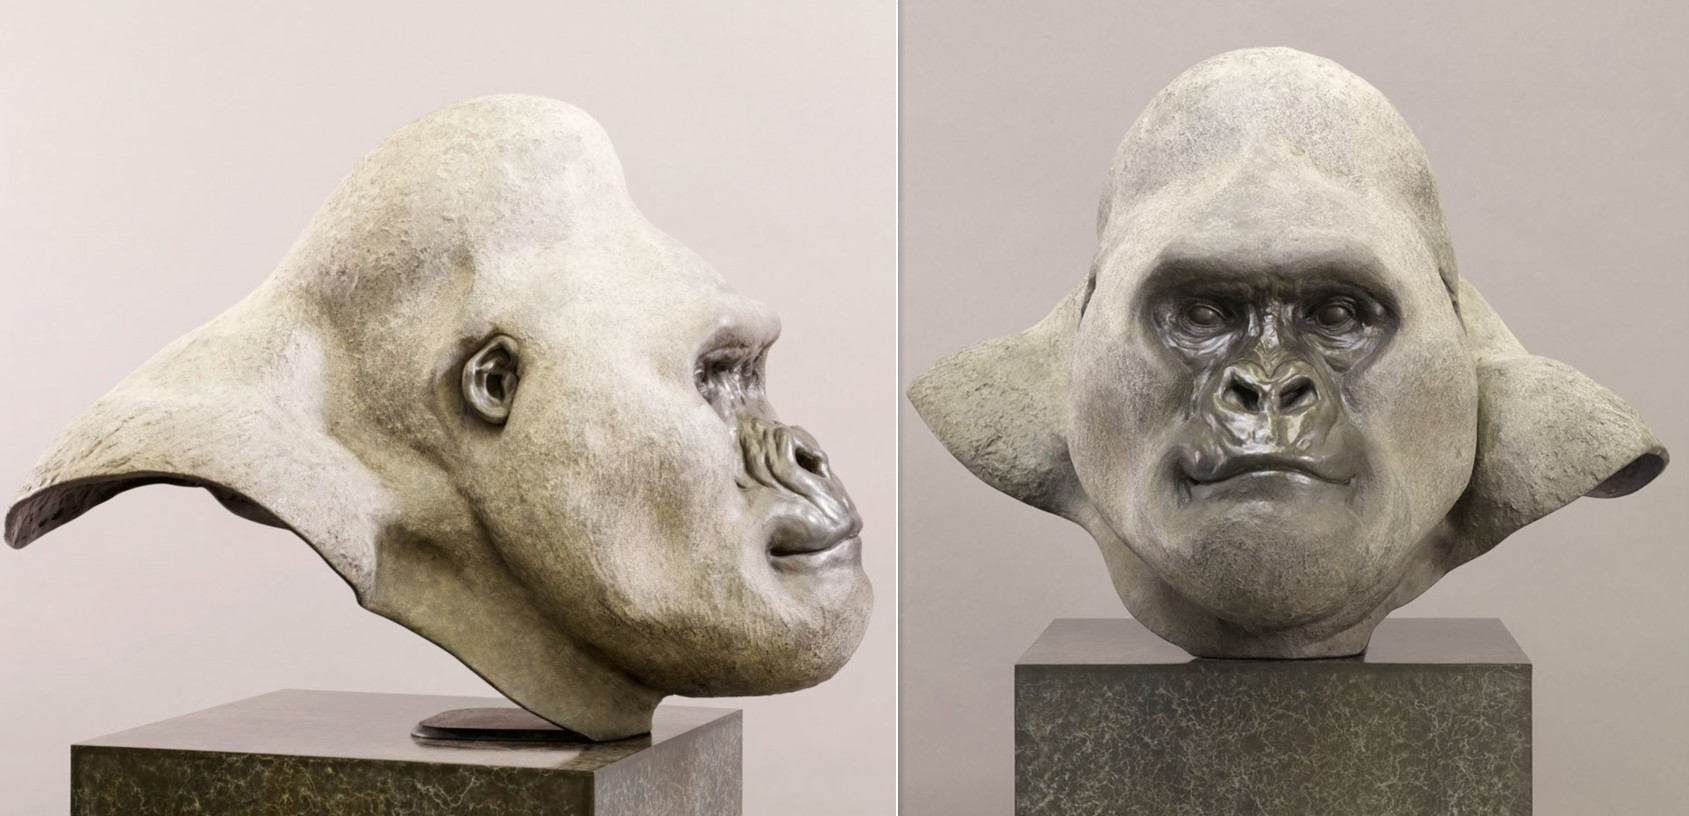 Animal head gorilla head sculpture